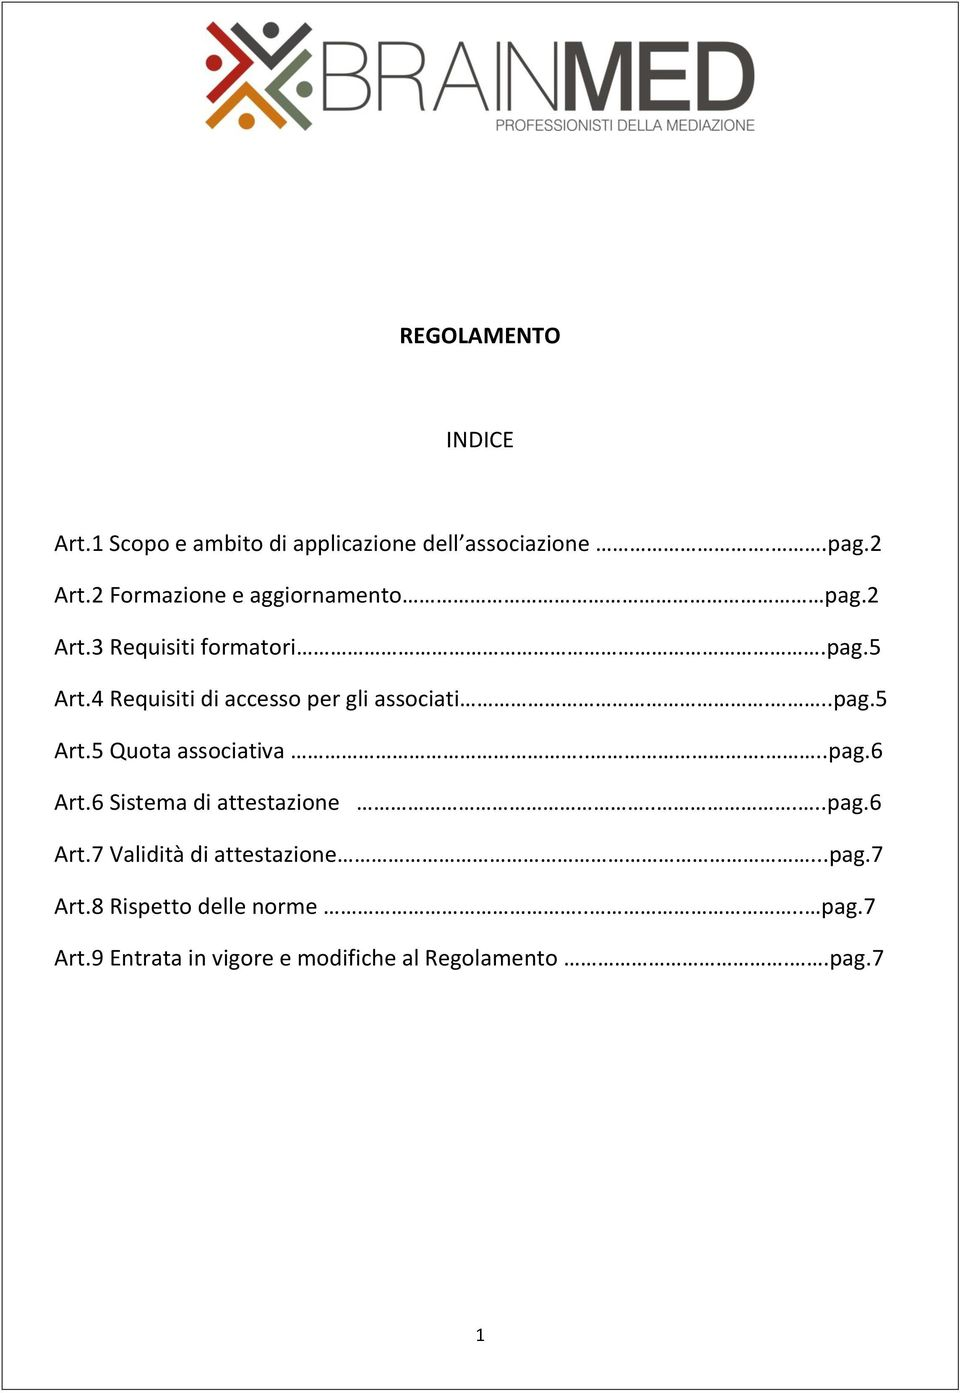 4 Requisiti di accesso per gli associati...pag.5 Art.5 Quota associativa.....pag.6 Art.